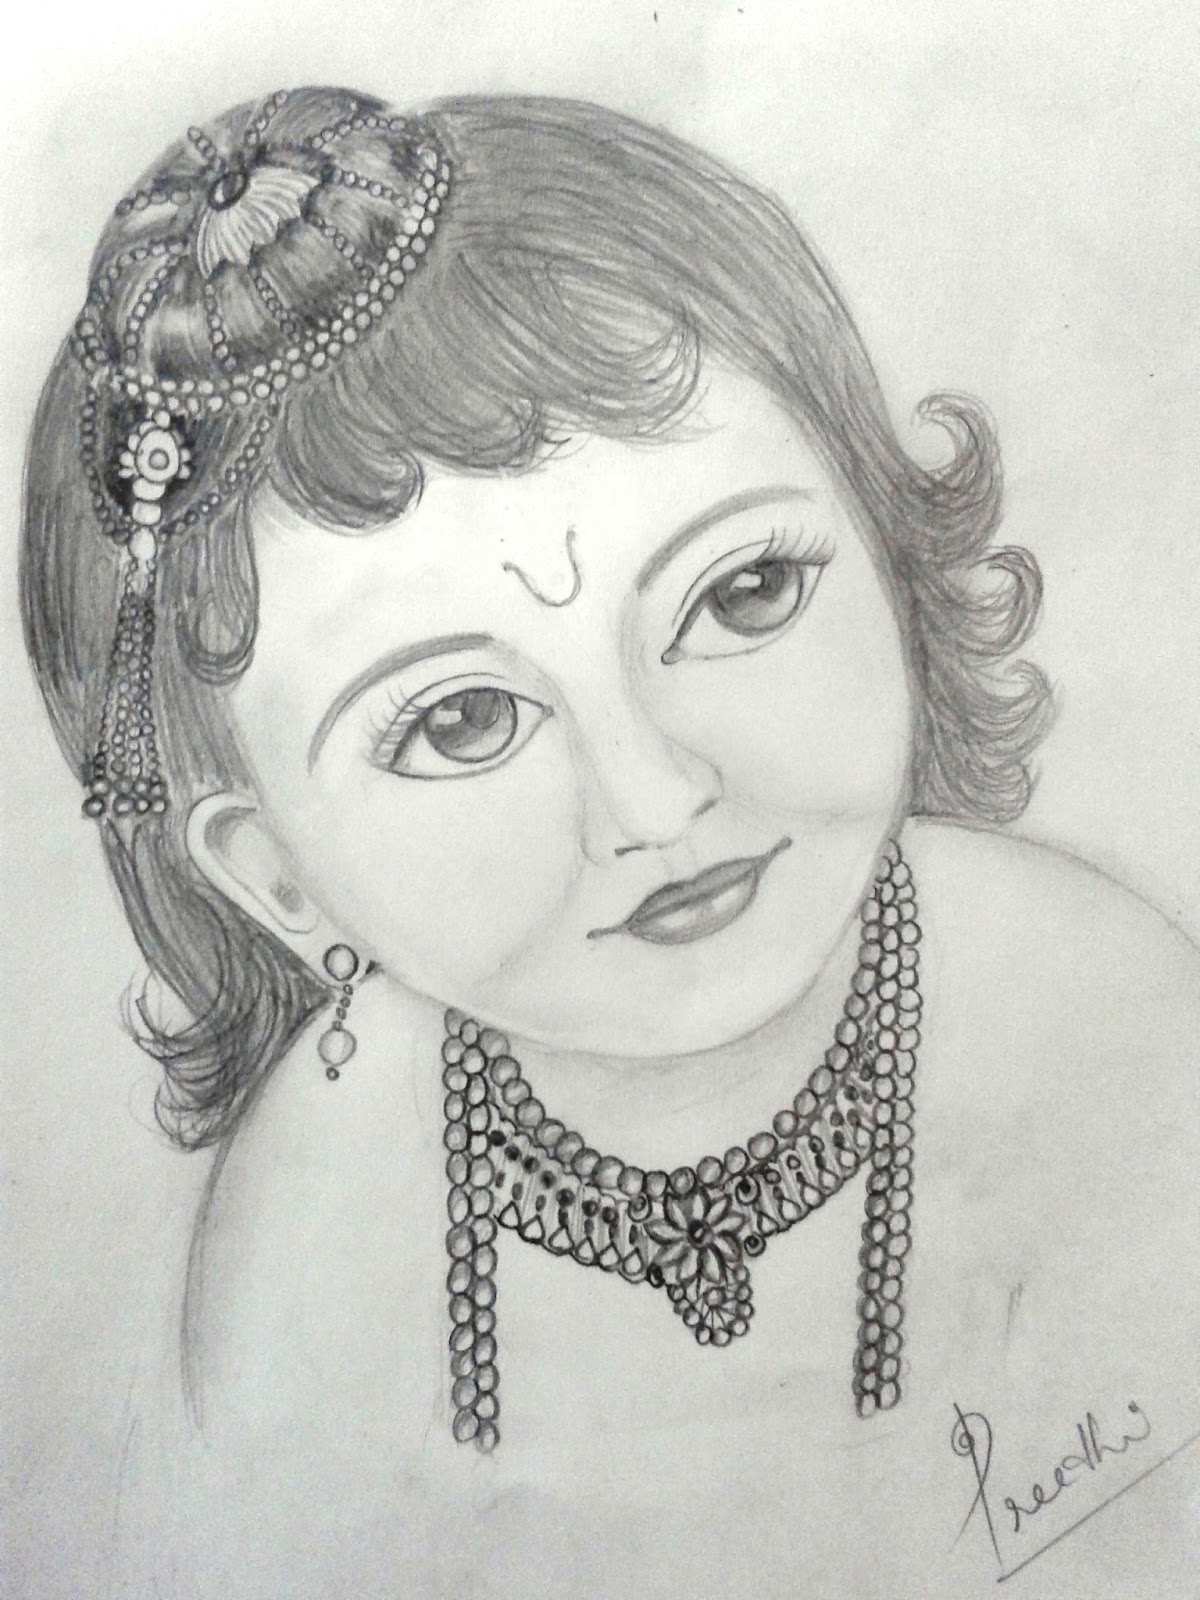 A pencil sketch of little krishna